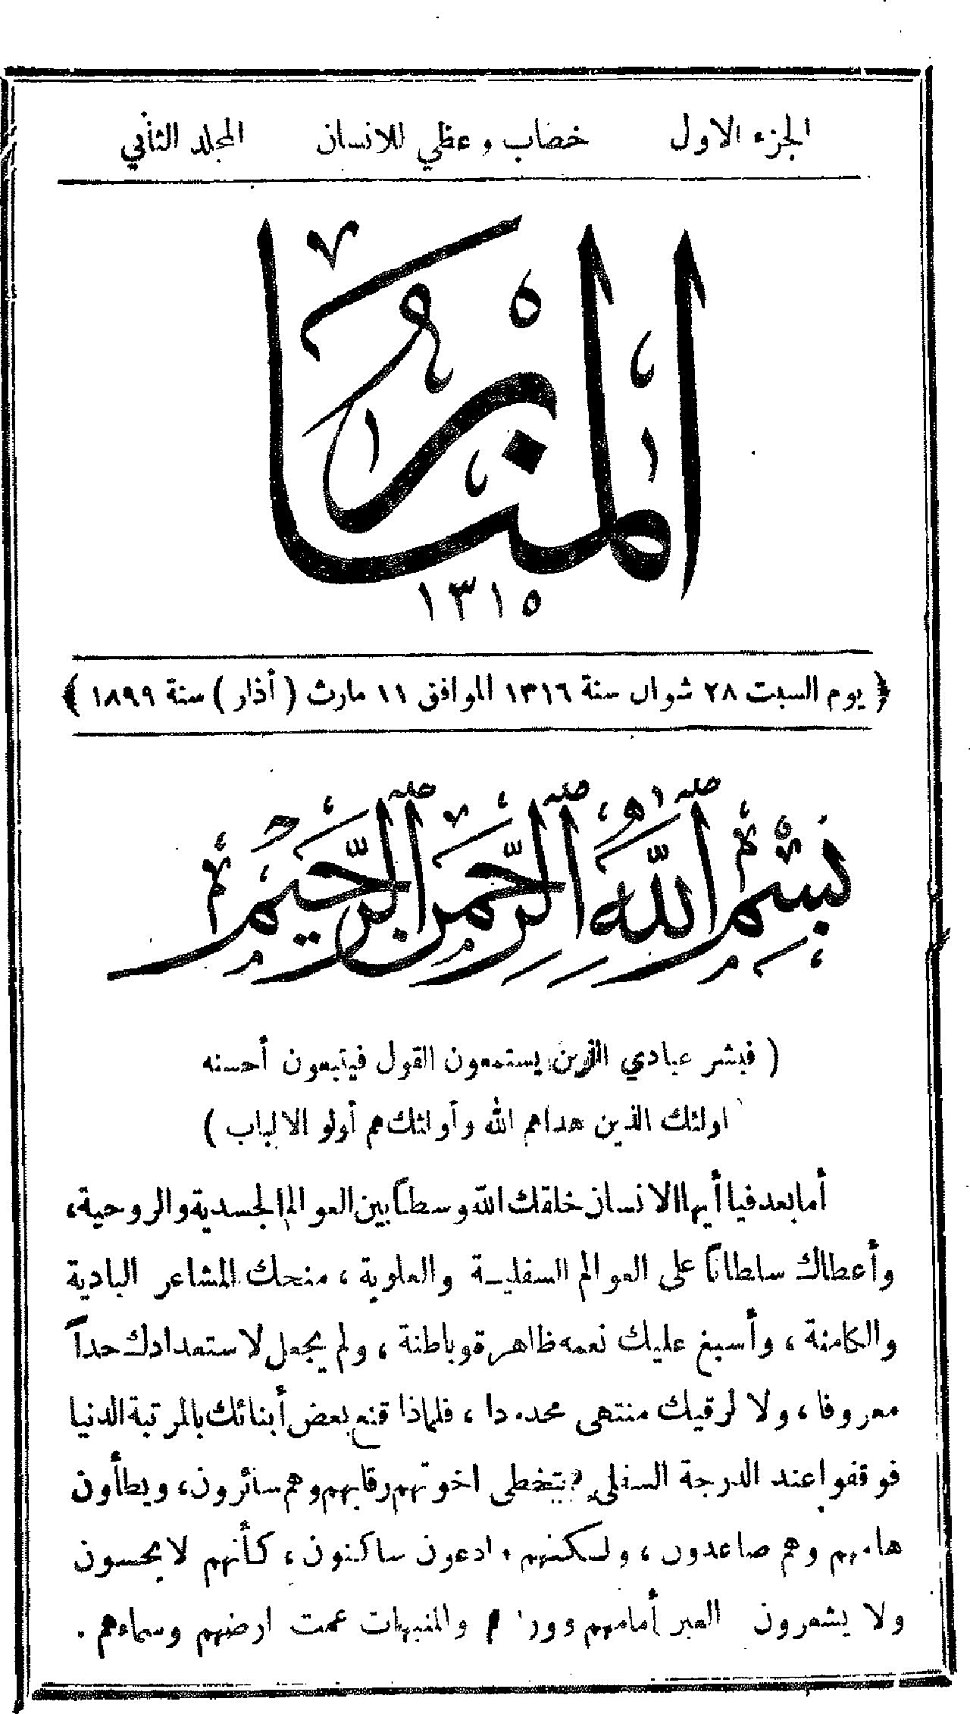 Cover of the second issue of al-Manar magazine, 1899